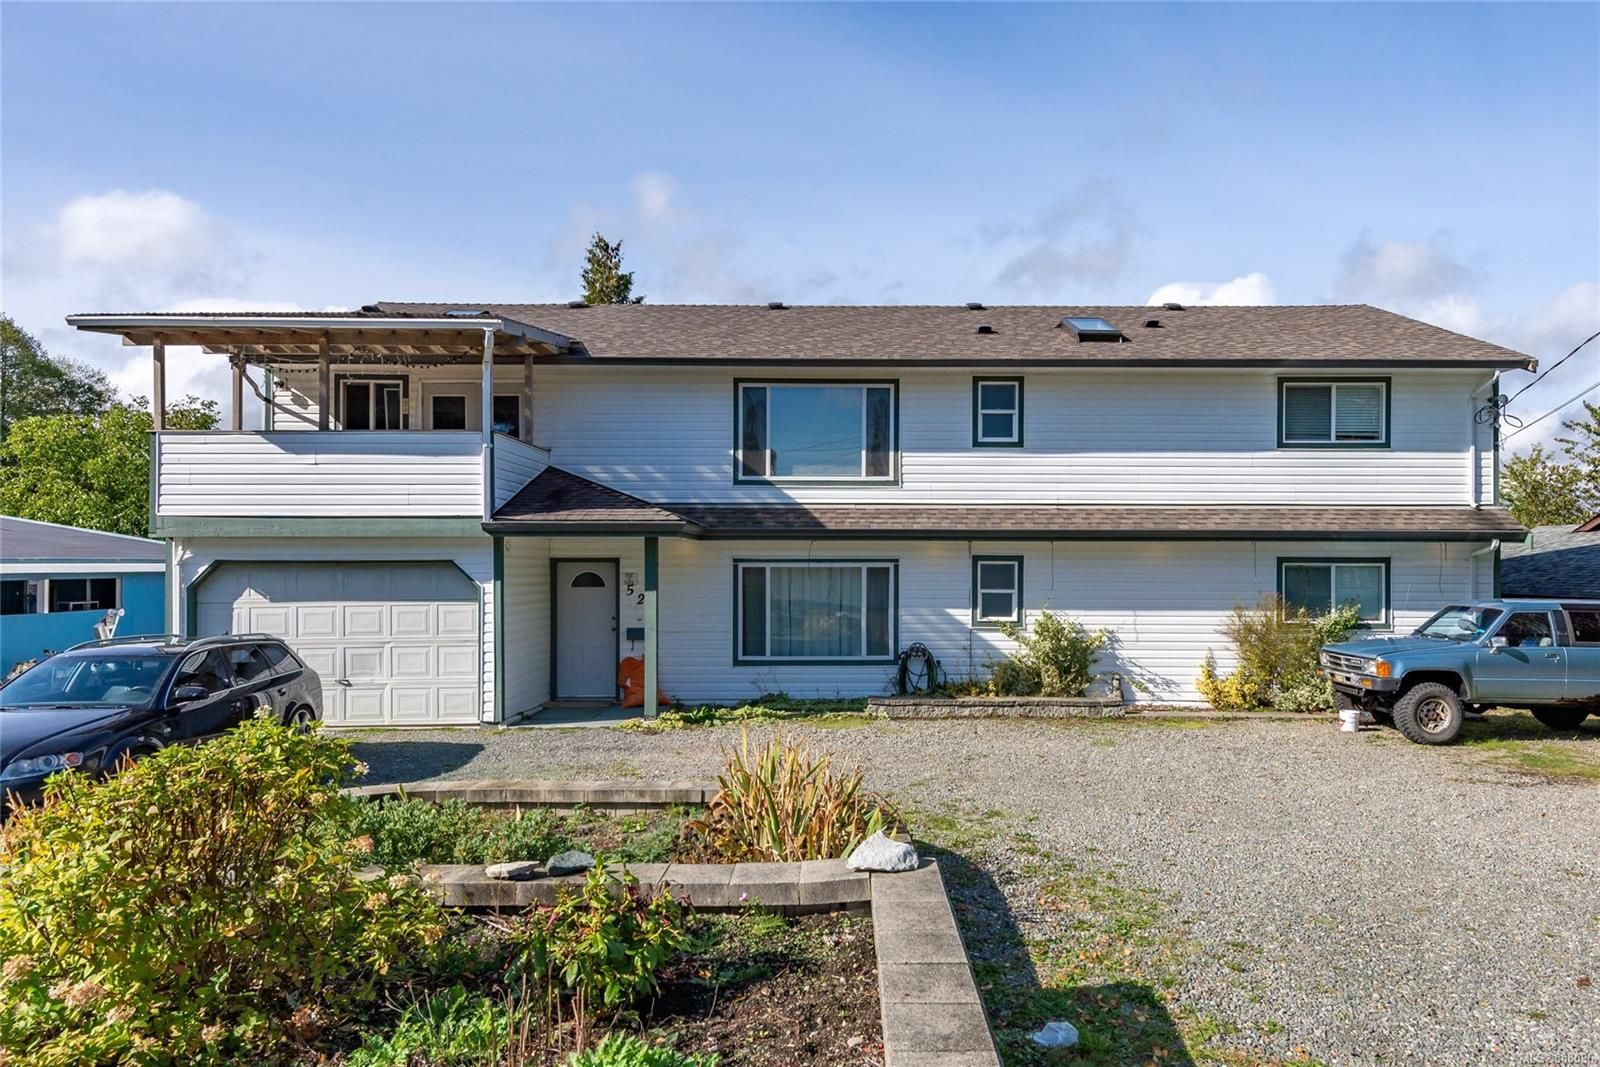 Main Photo: 52 JONES Rd in : CR Campbell River Central House for sale (Campbell River)  : MLS®# 888096